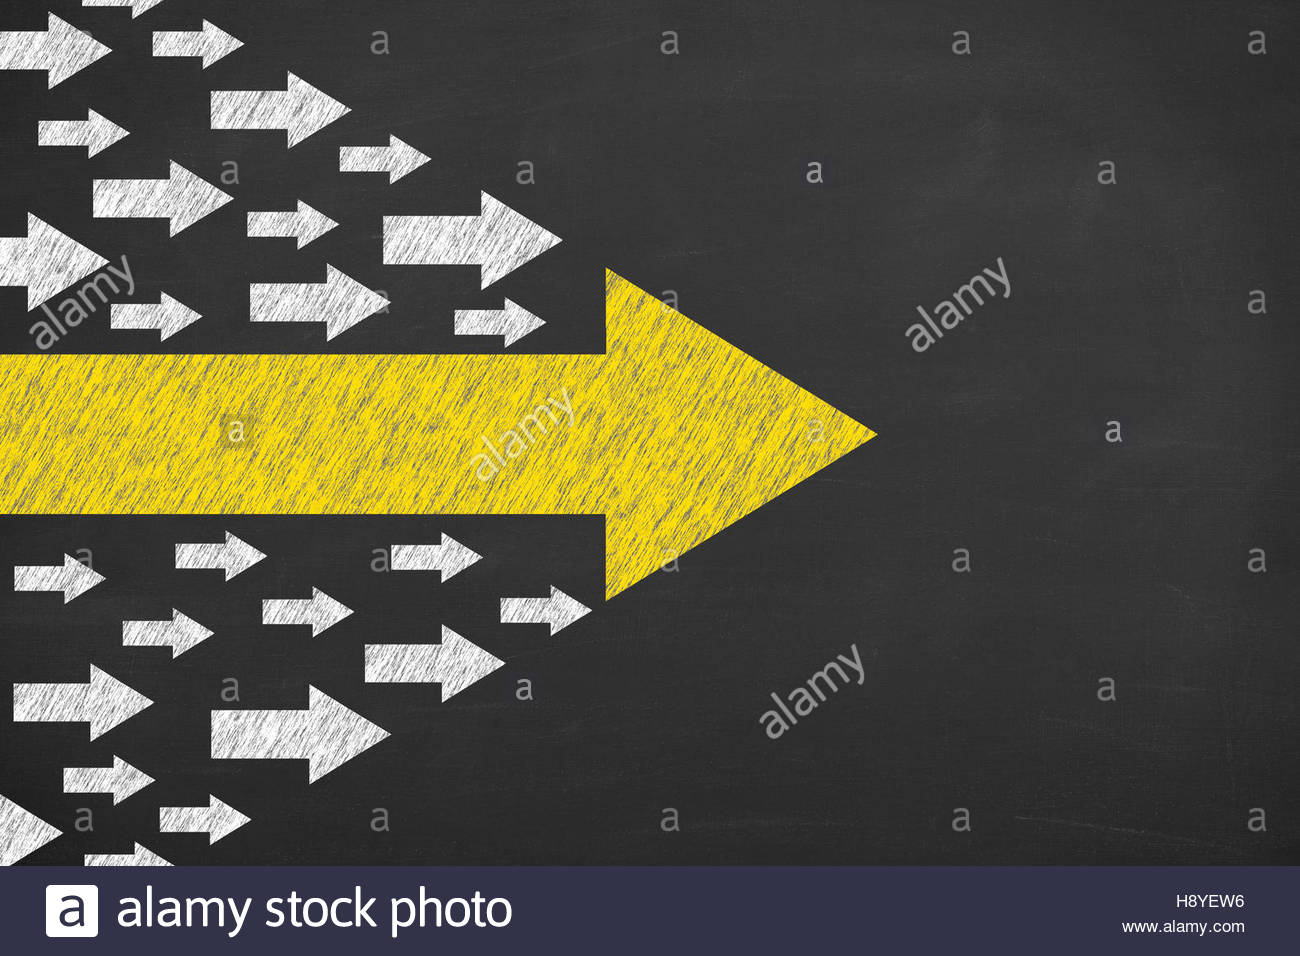 A business man is drawing Leadership concept with arrows on chalkboard background - Stock Image